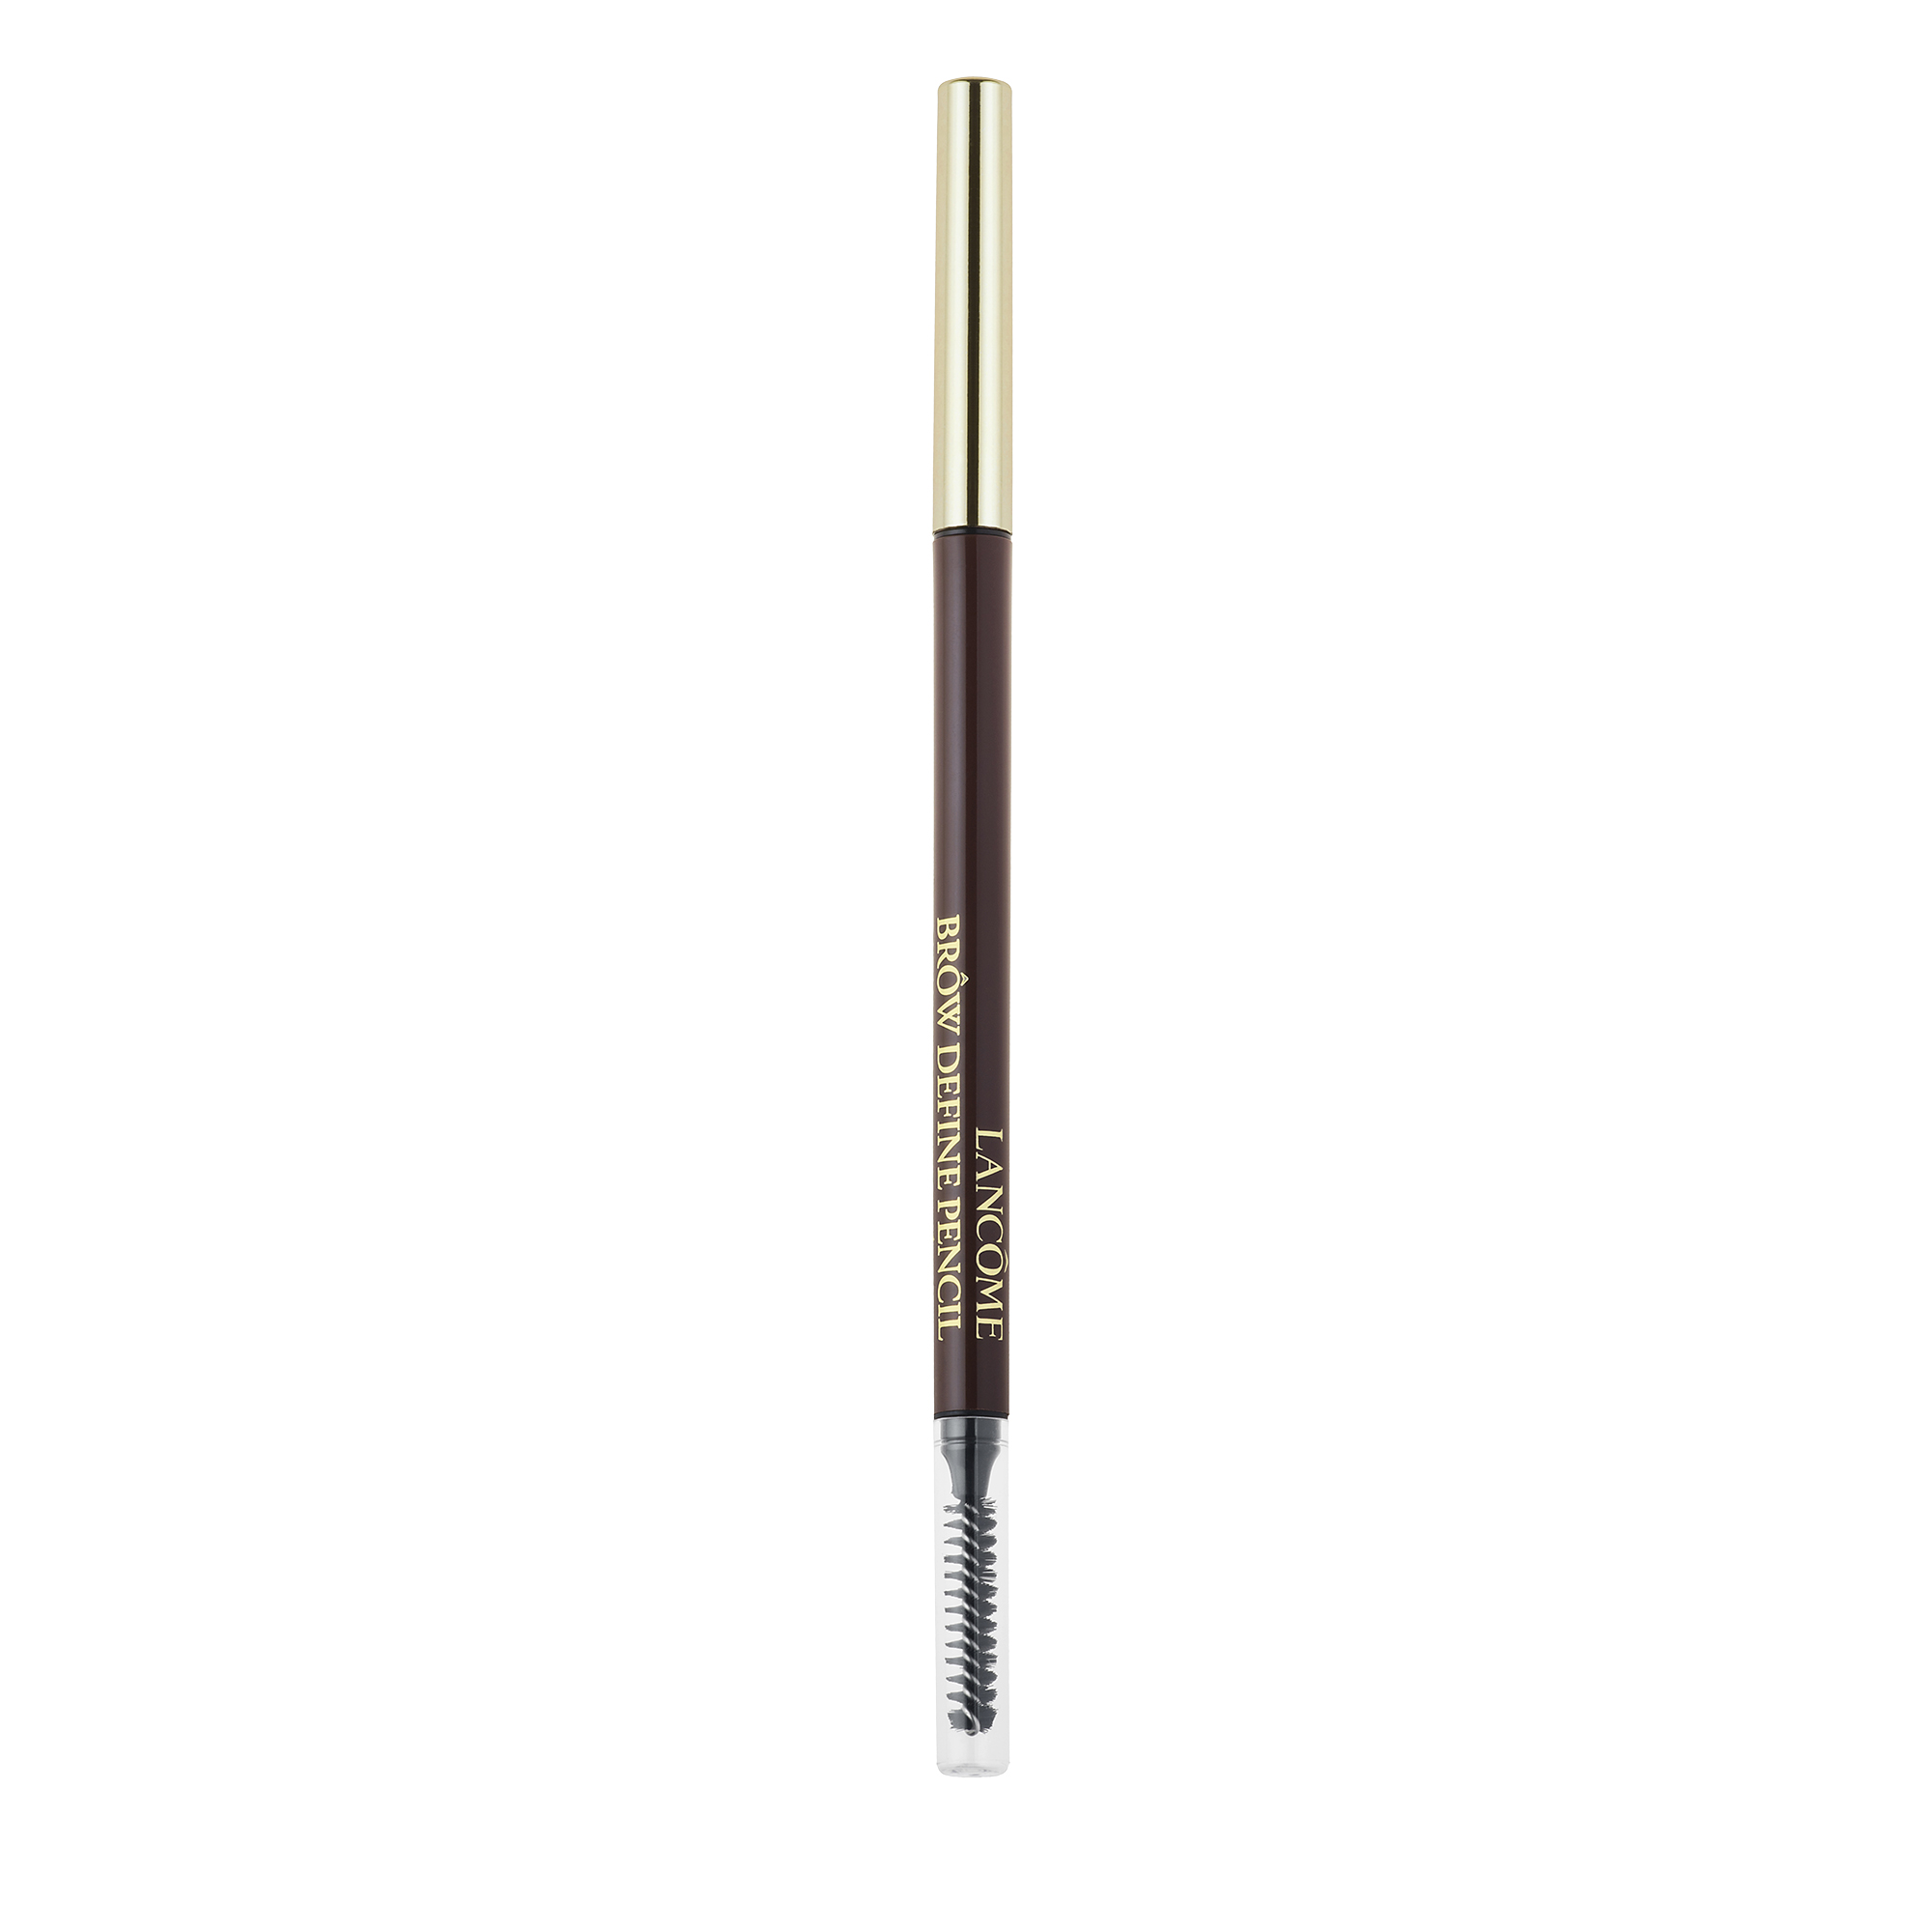 Brow Define & Fill Pencil 10